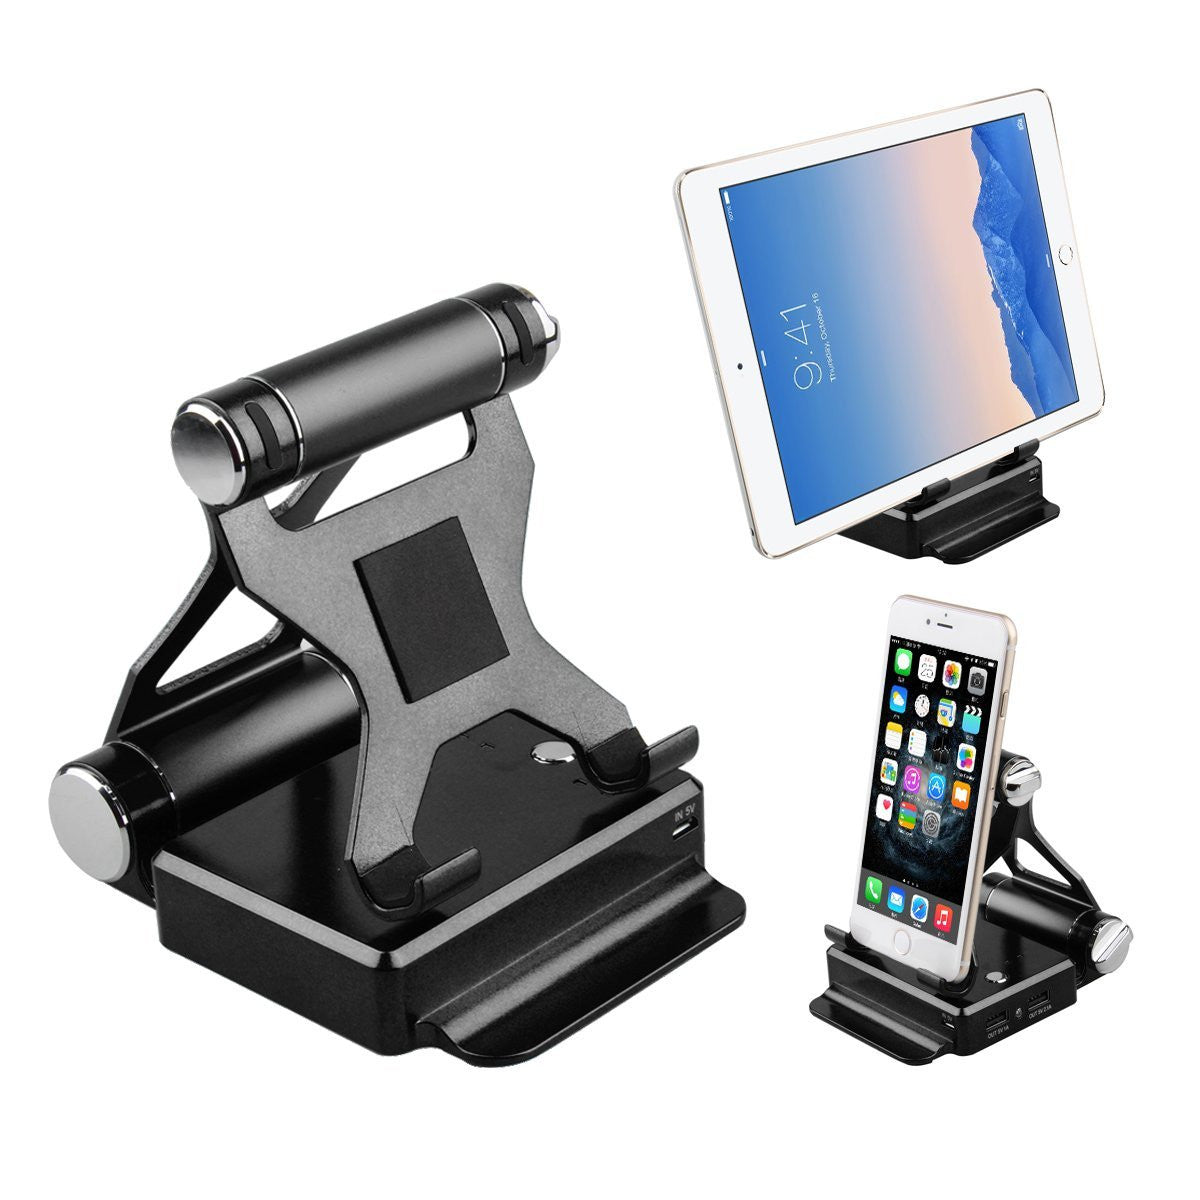 Foldable Gadget Stand With Built in Powerbank